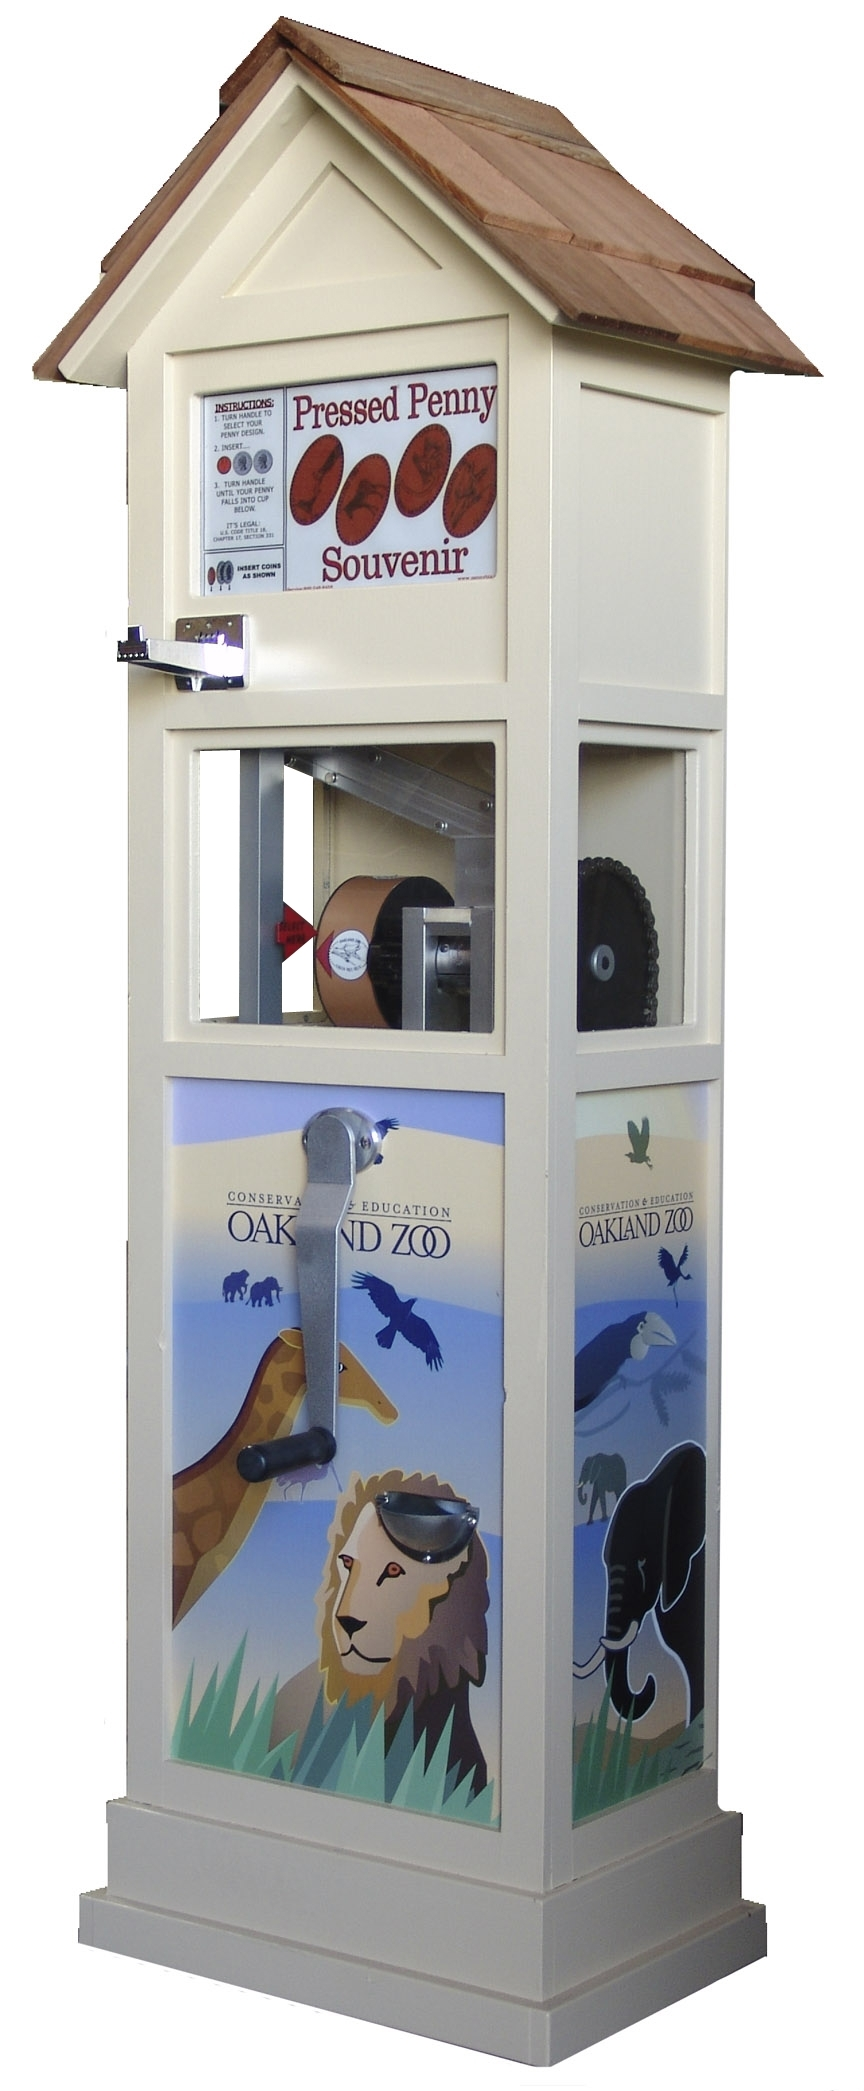 Outdoor Penny Machine by The Penny Machine Company